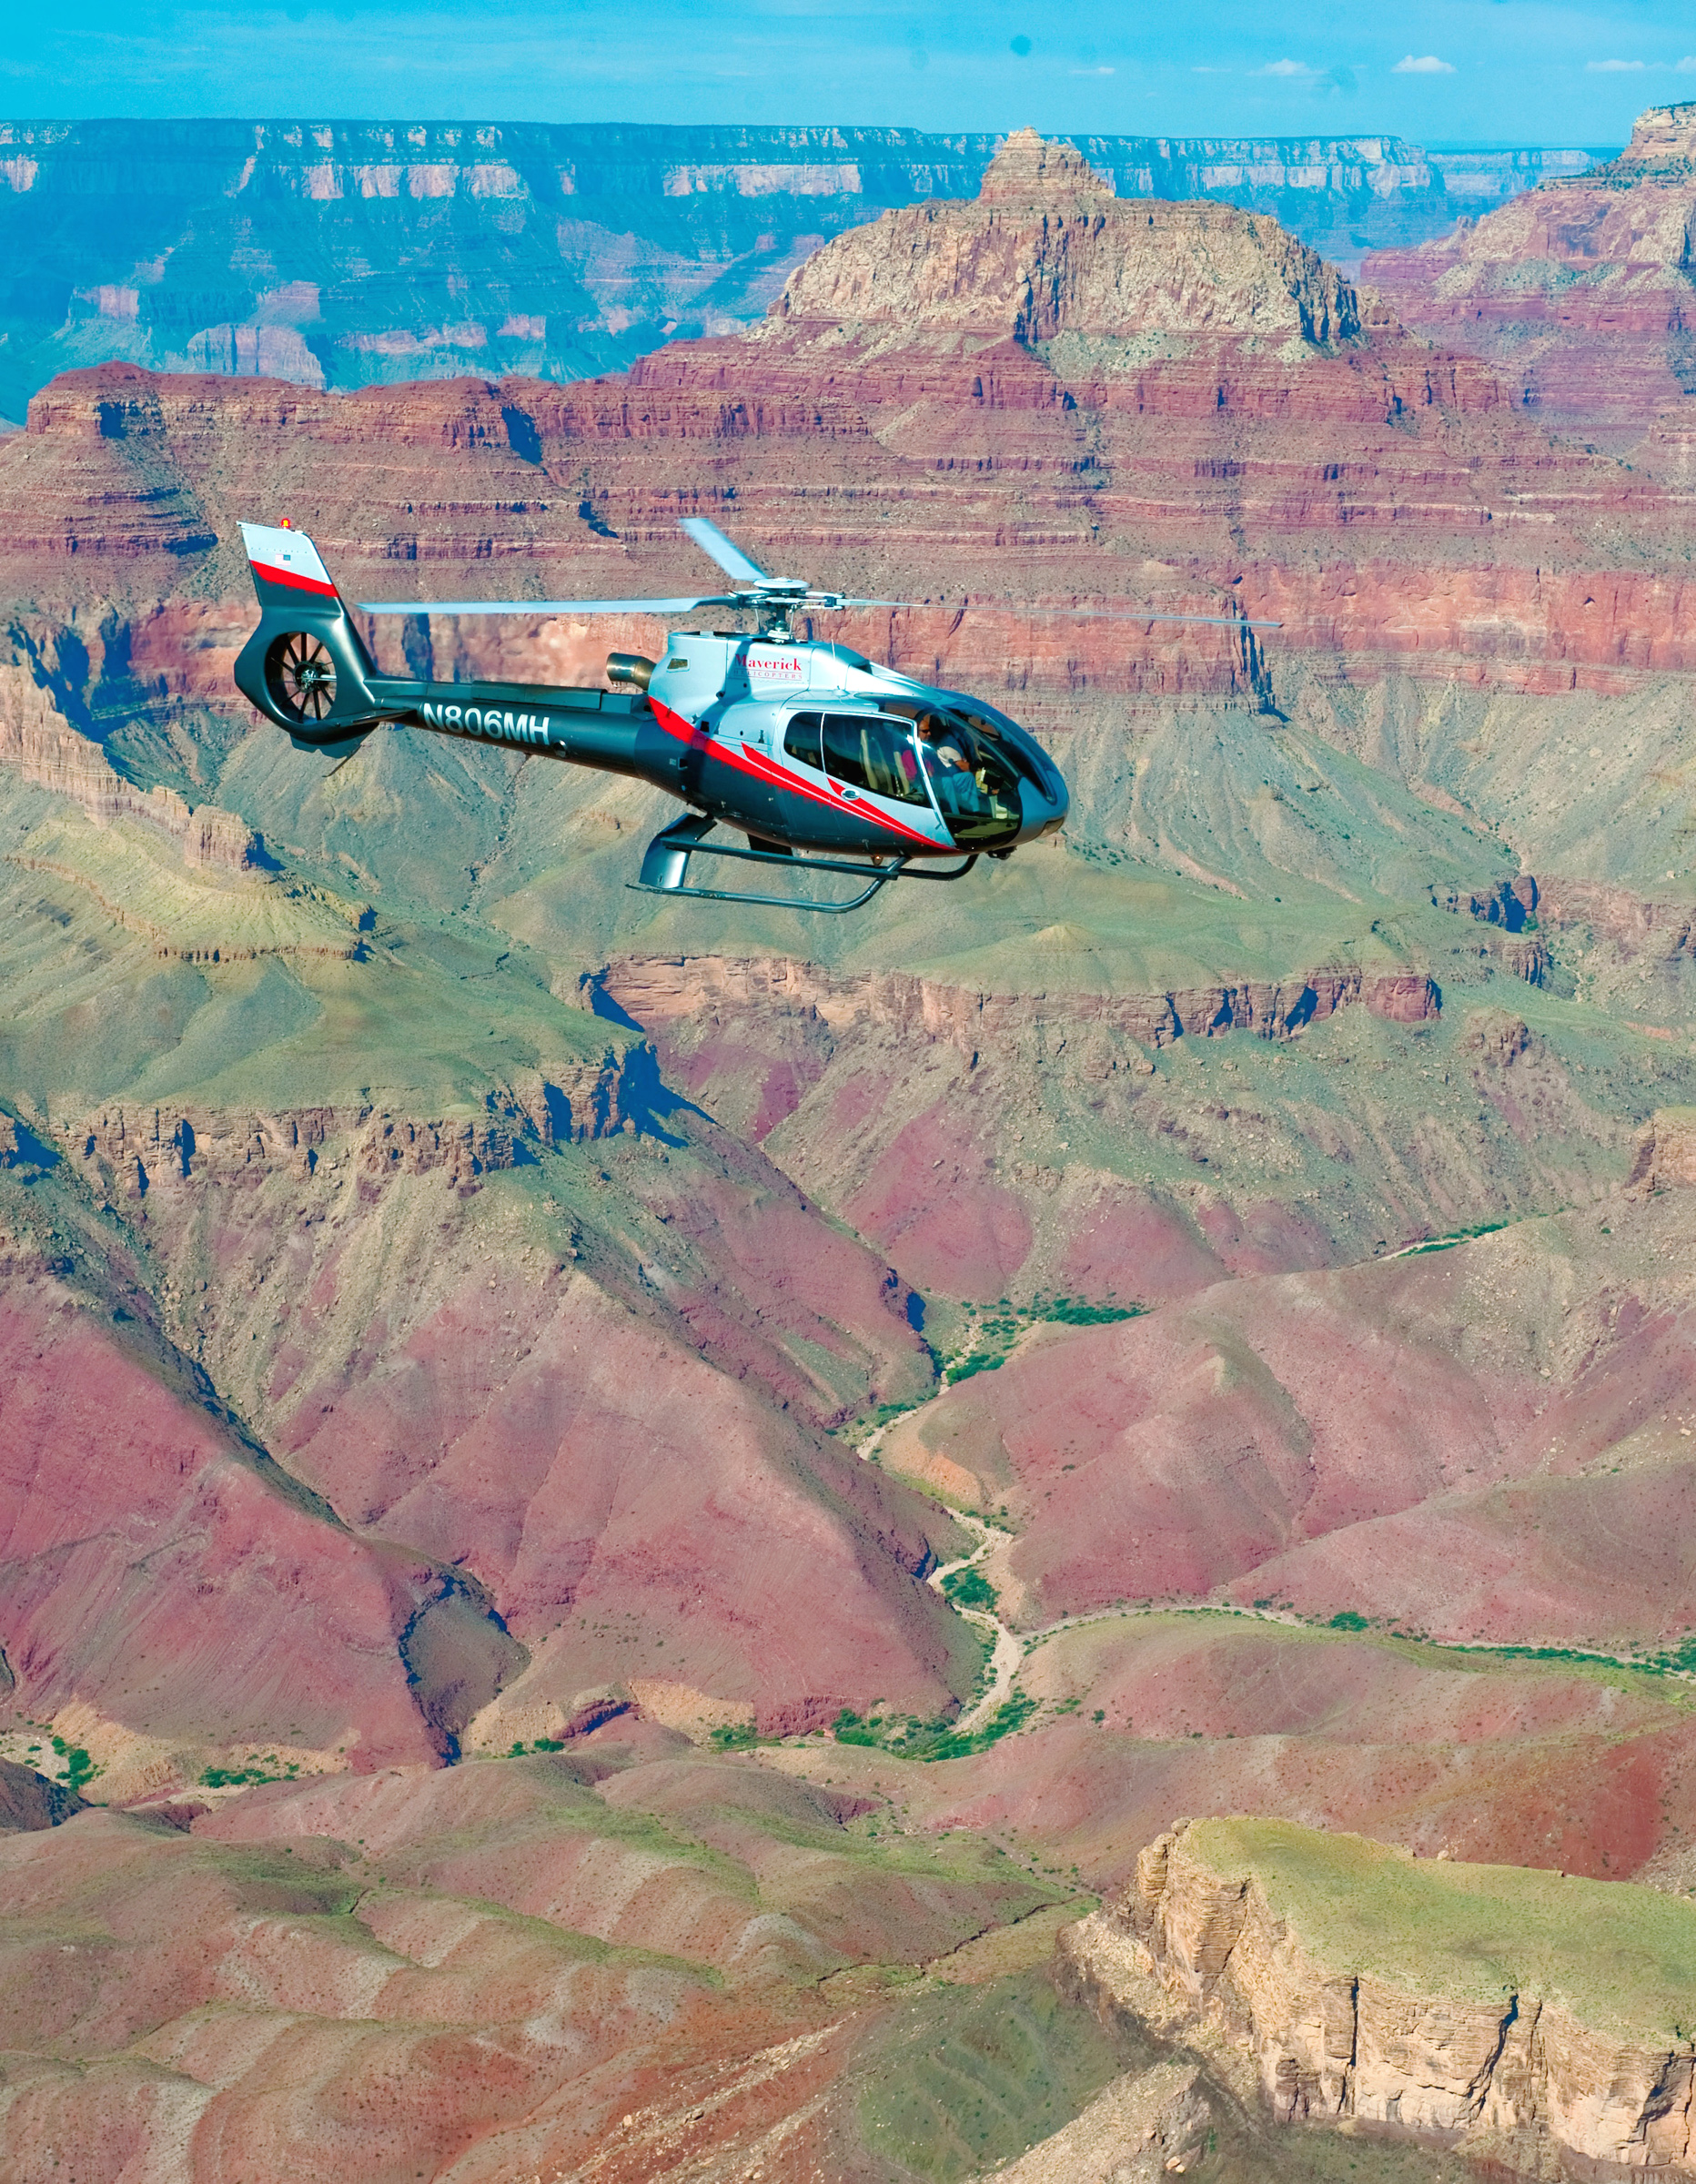 Maverick Canyon Spirit 55 minute Grand Canyon Helicopter Tour